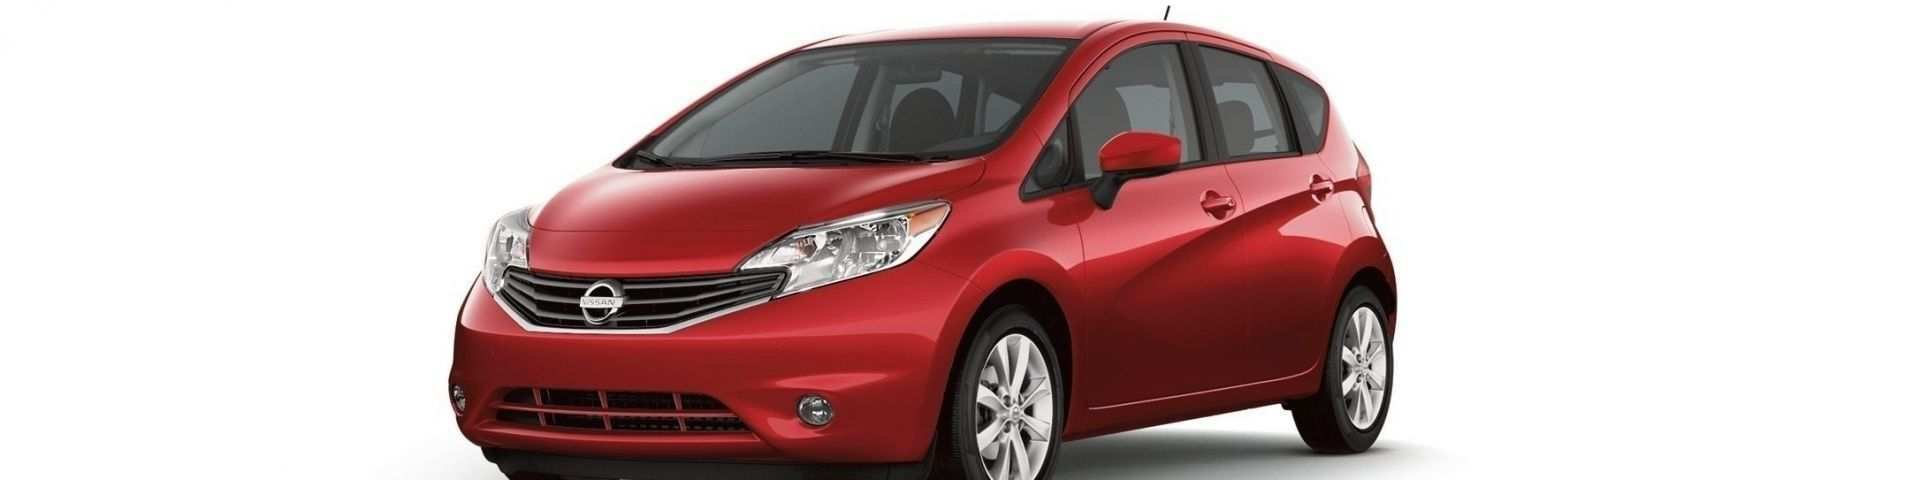 46 New 2020 Nissan Tiida Mexico Uae New Model And Performance